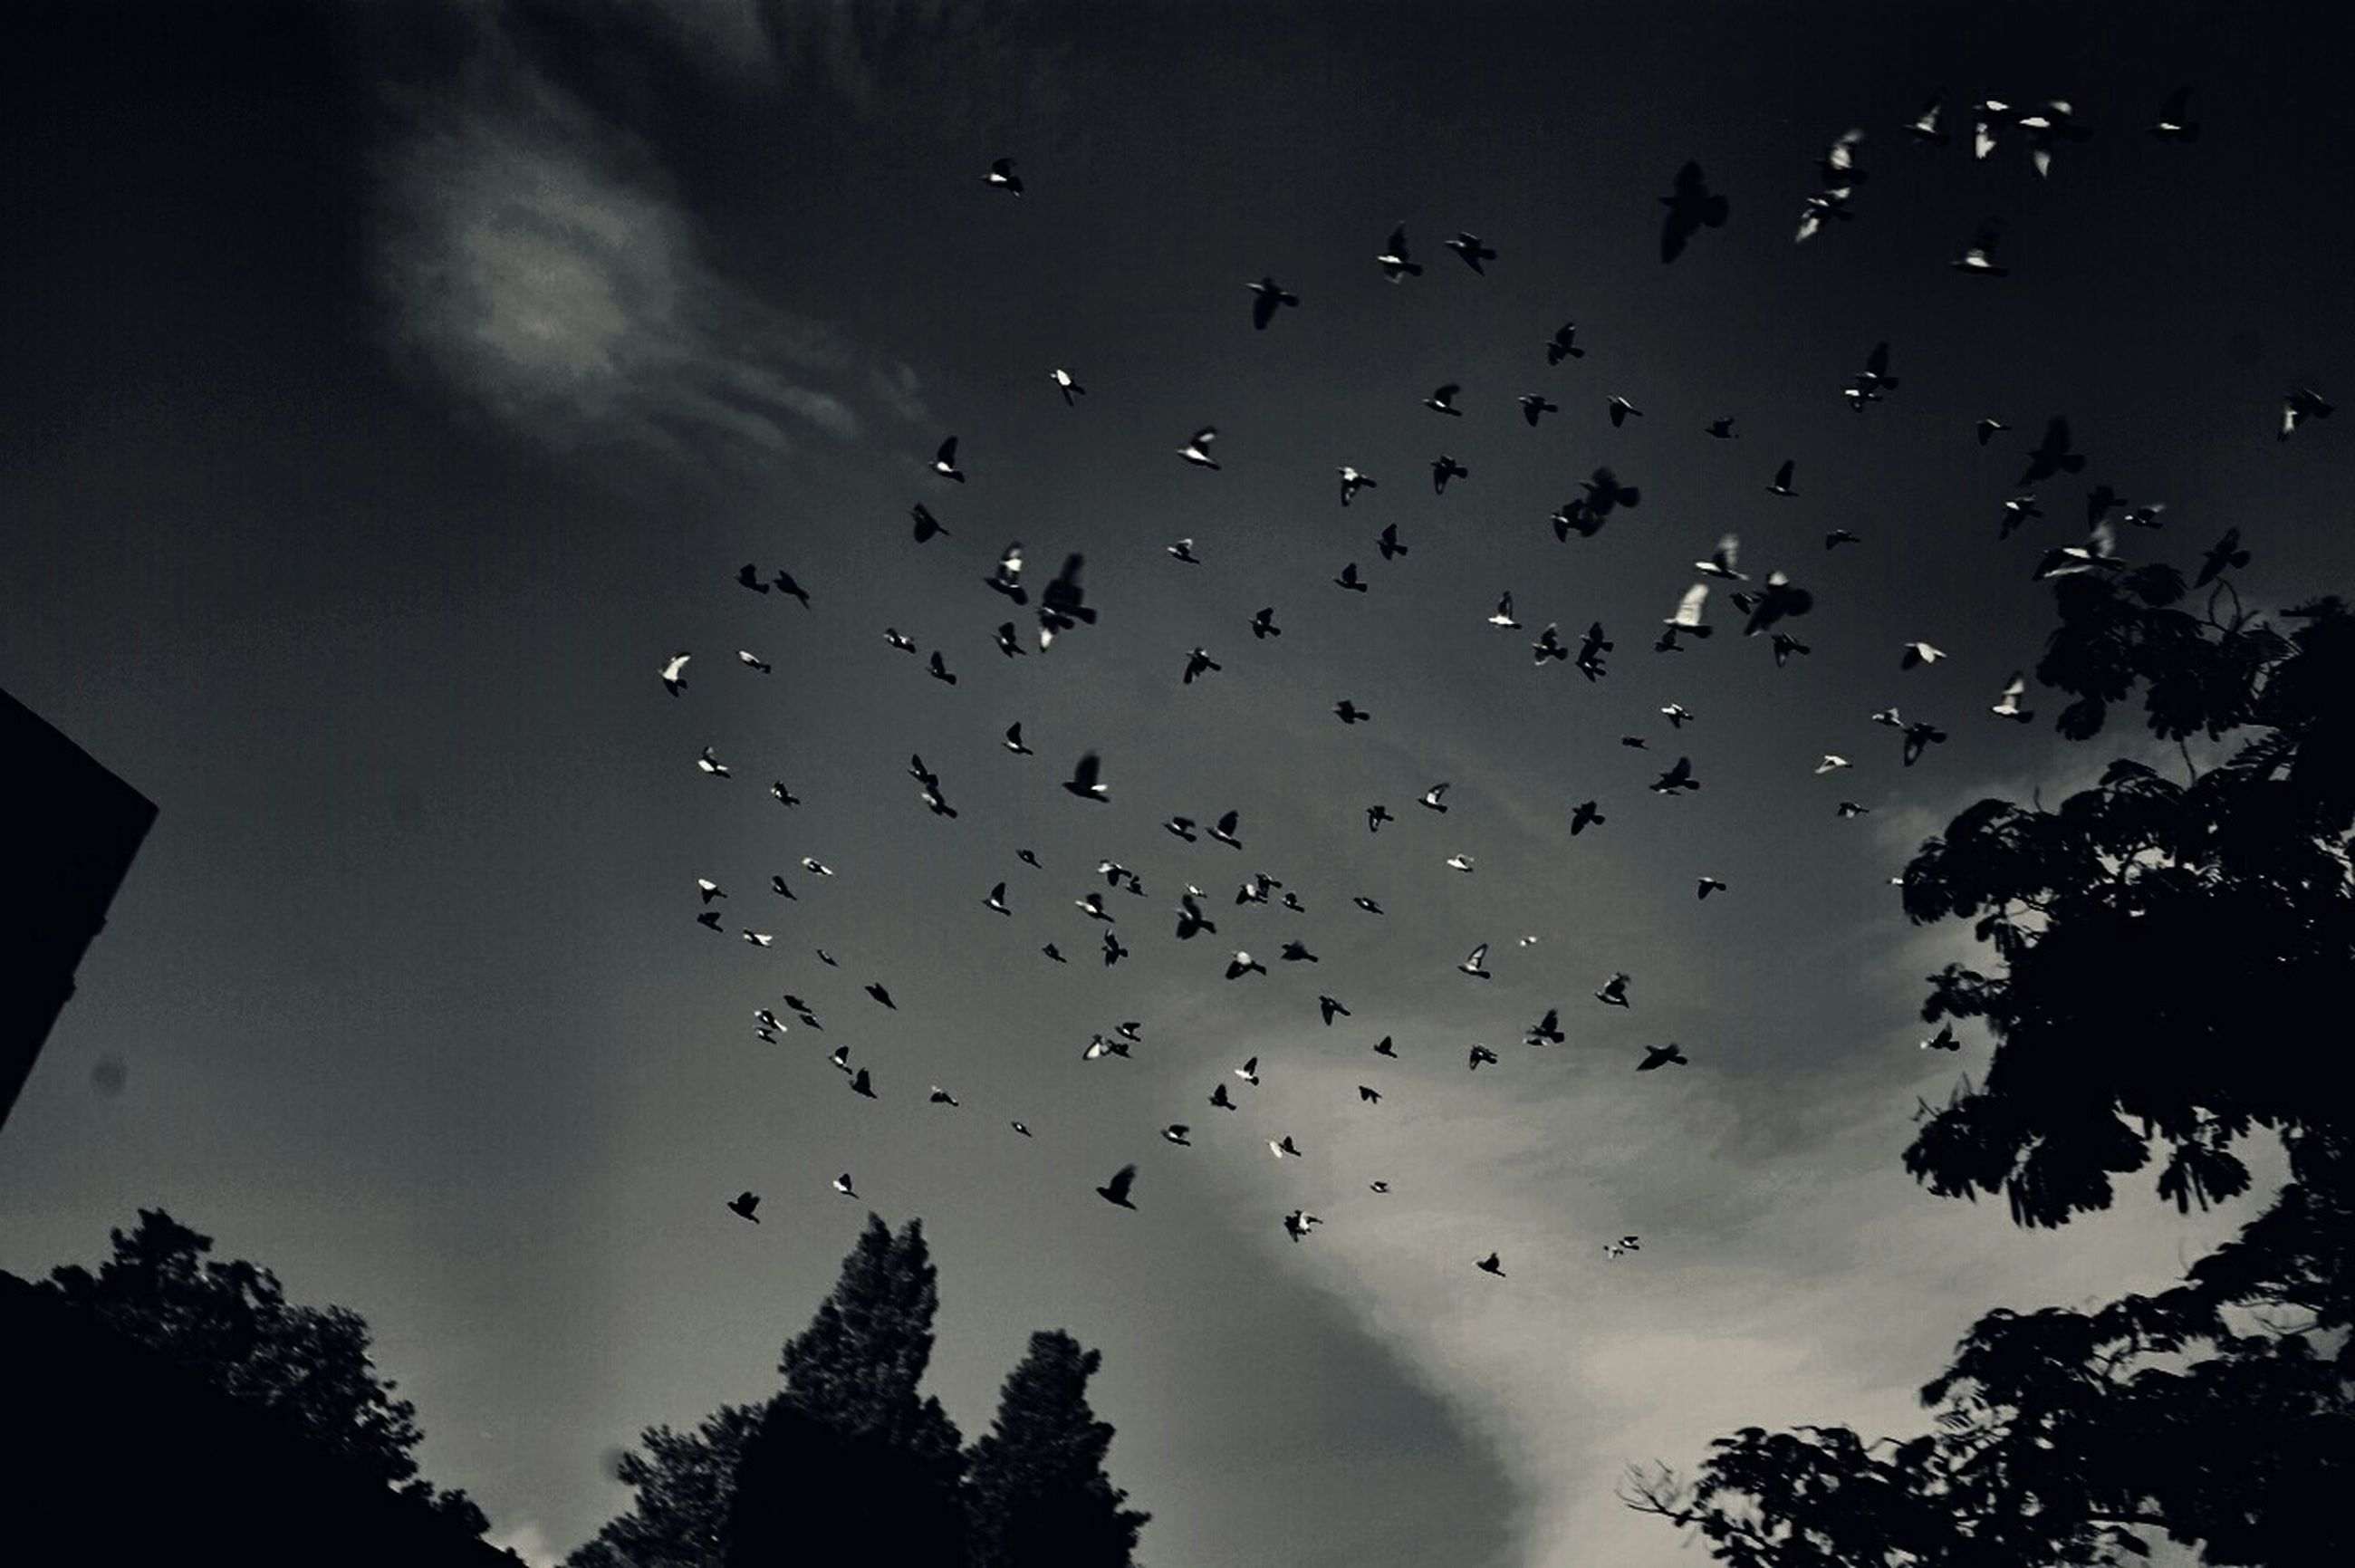 flying, bird, low angle view, animals in the wild, animal themes, silhouette, flock of birds, wildlife, sky, tree, mid-air, nature, cloud - sky, dusk, beauty in nature, outdoors, spread wings, no people, scenics